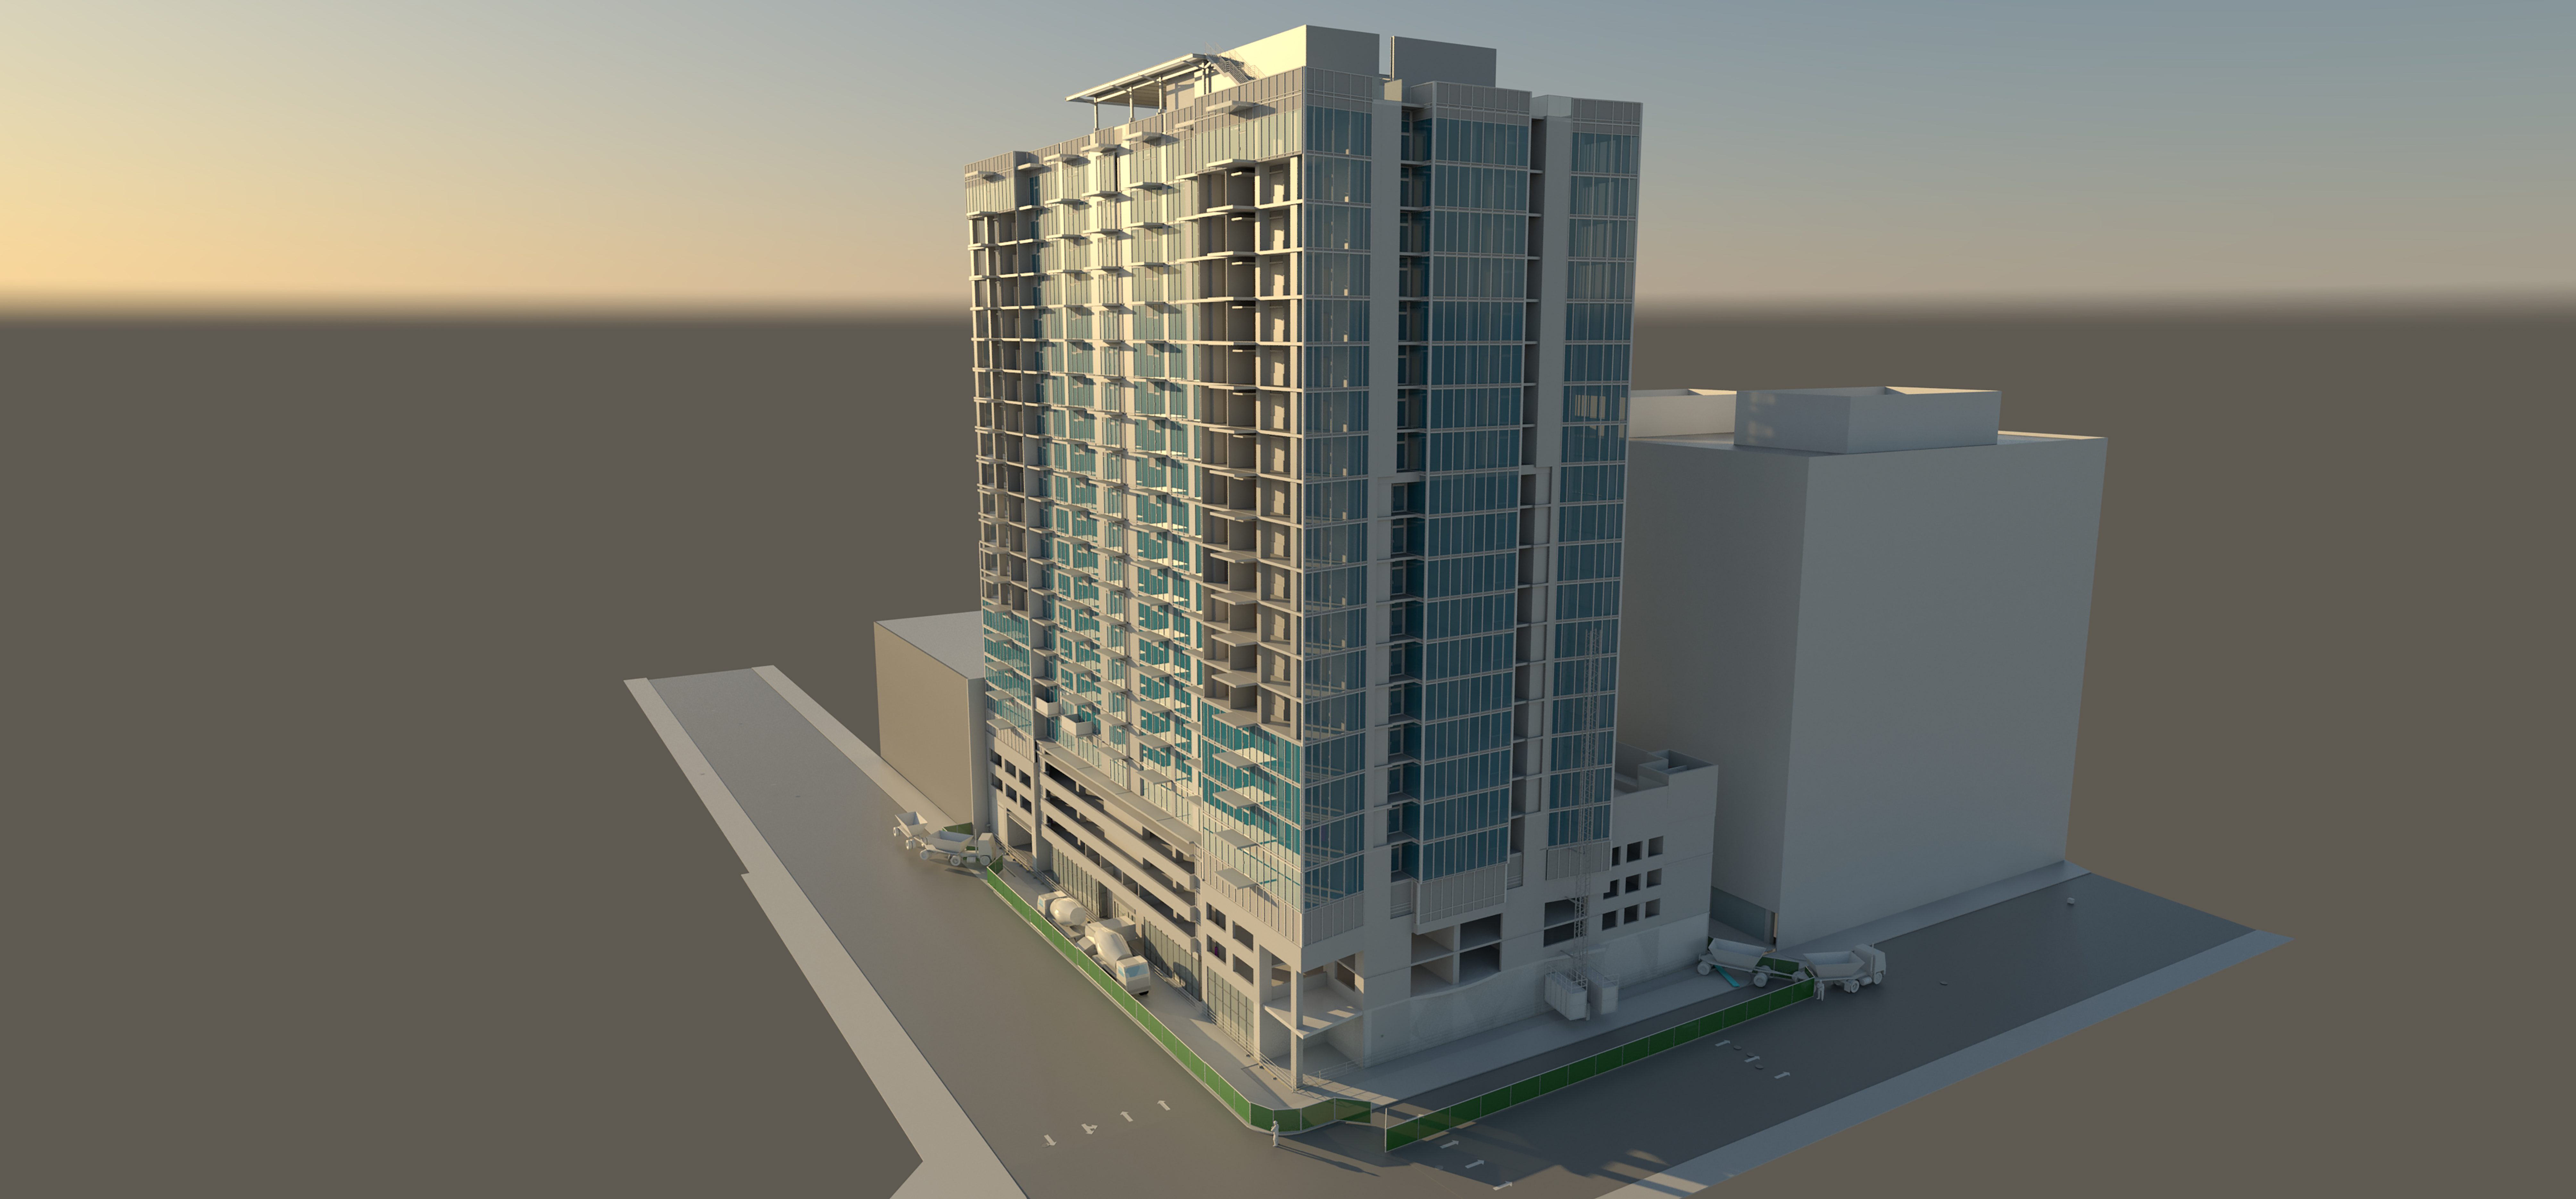 site logistics 8th and hope matt construction bim rendering